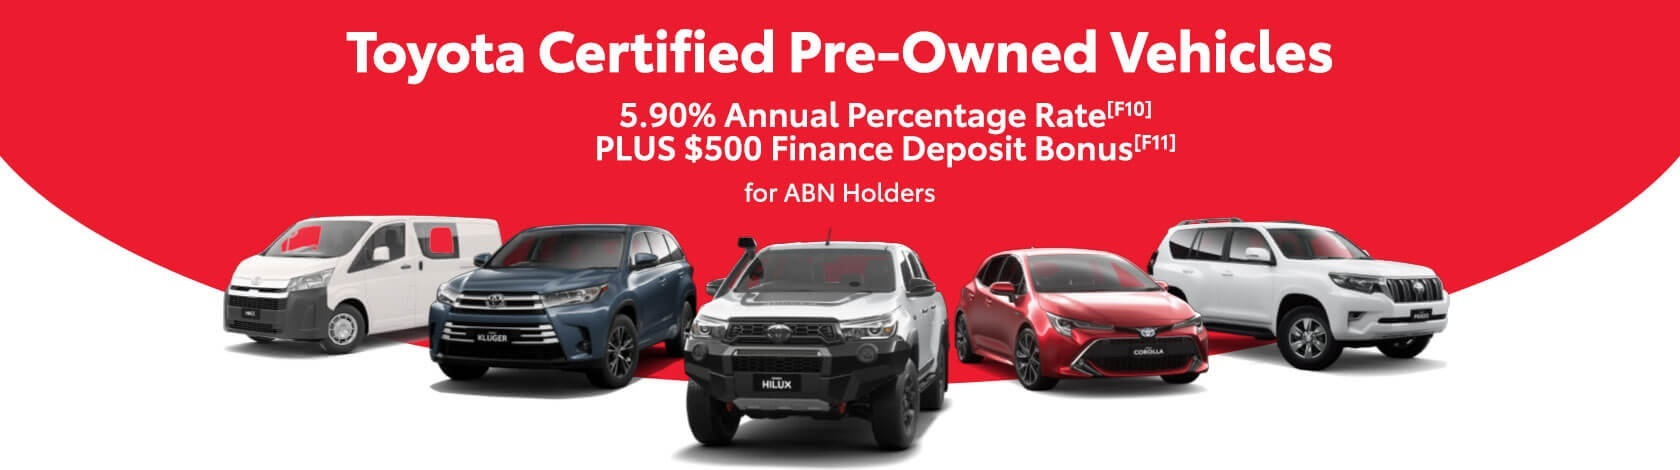 Toyota Certified Pre-Owned Vehicles - with Toyota Access